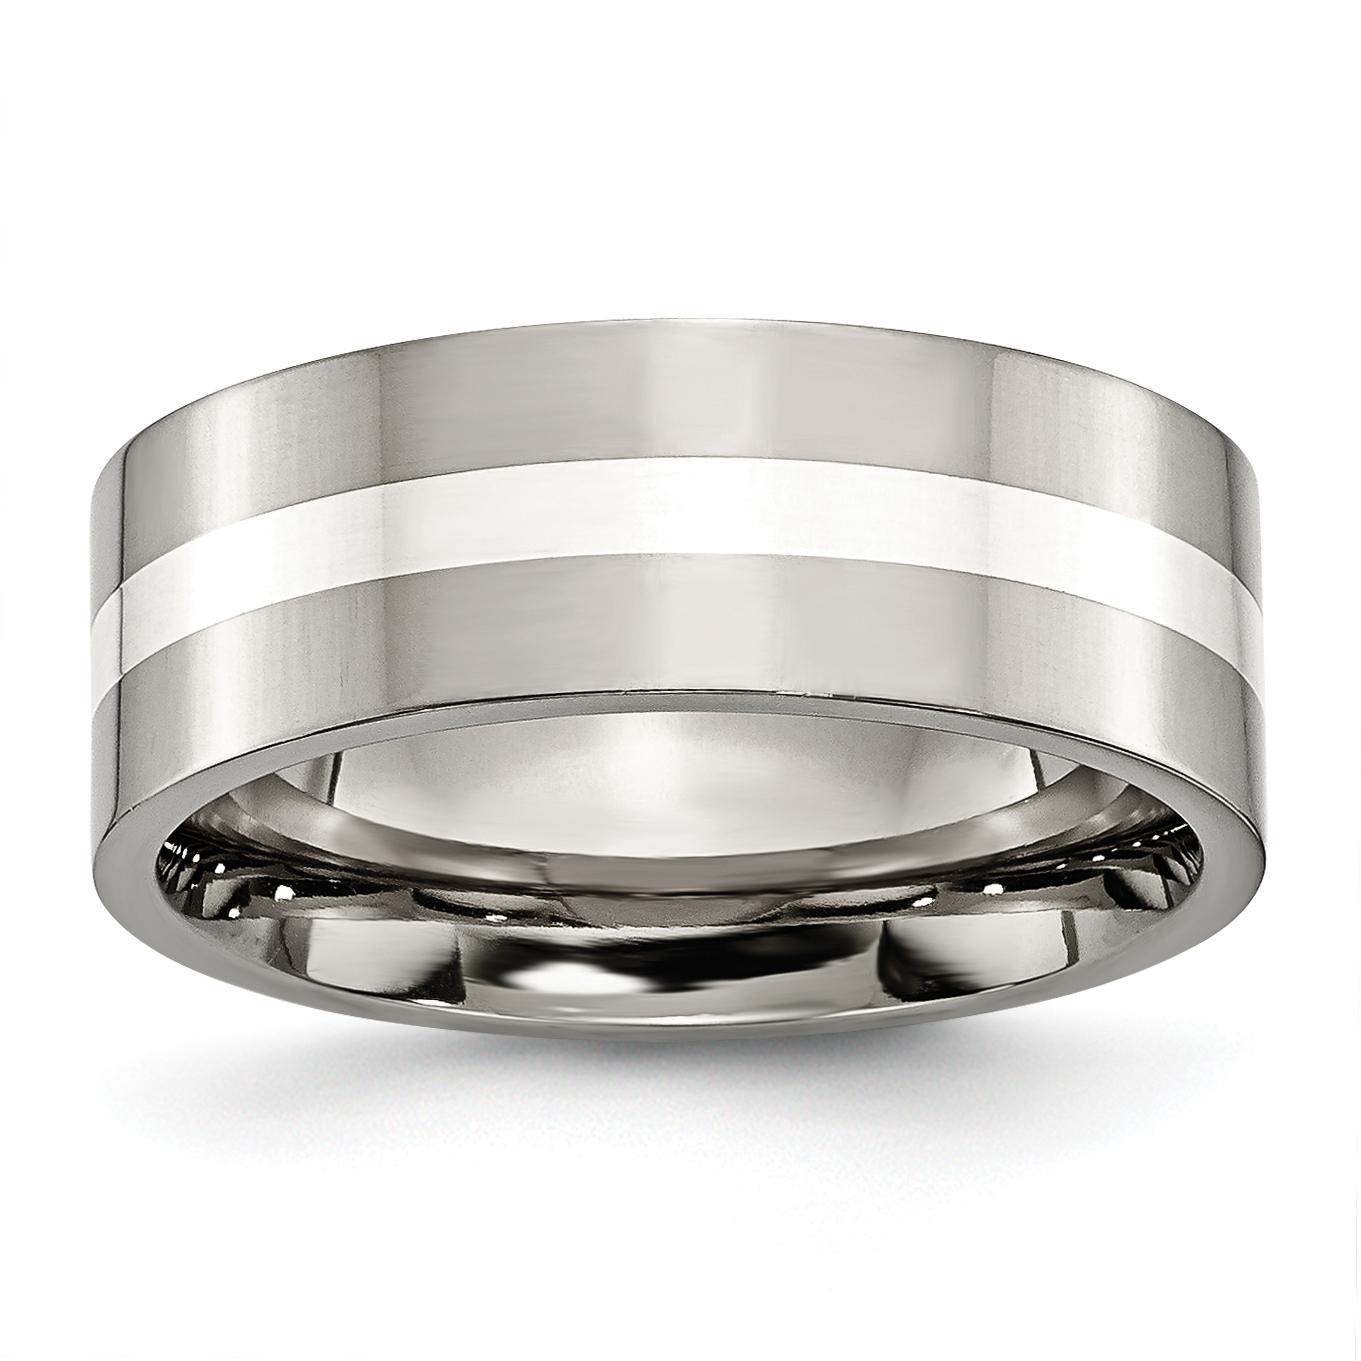 Titanium 925 Sterling Silver Inlay Flat 8mm Wedding Ring Band Size 7.00 Precious Metal Fine Jewelry Gifts For Women For Her - image 6 de 6